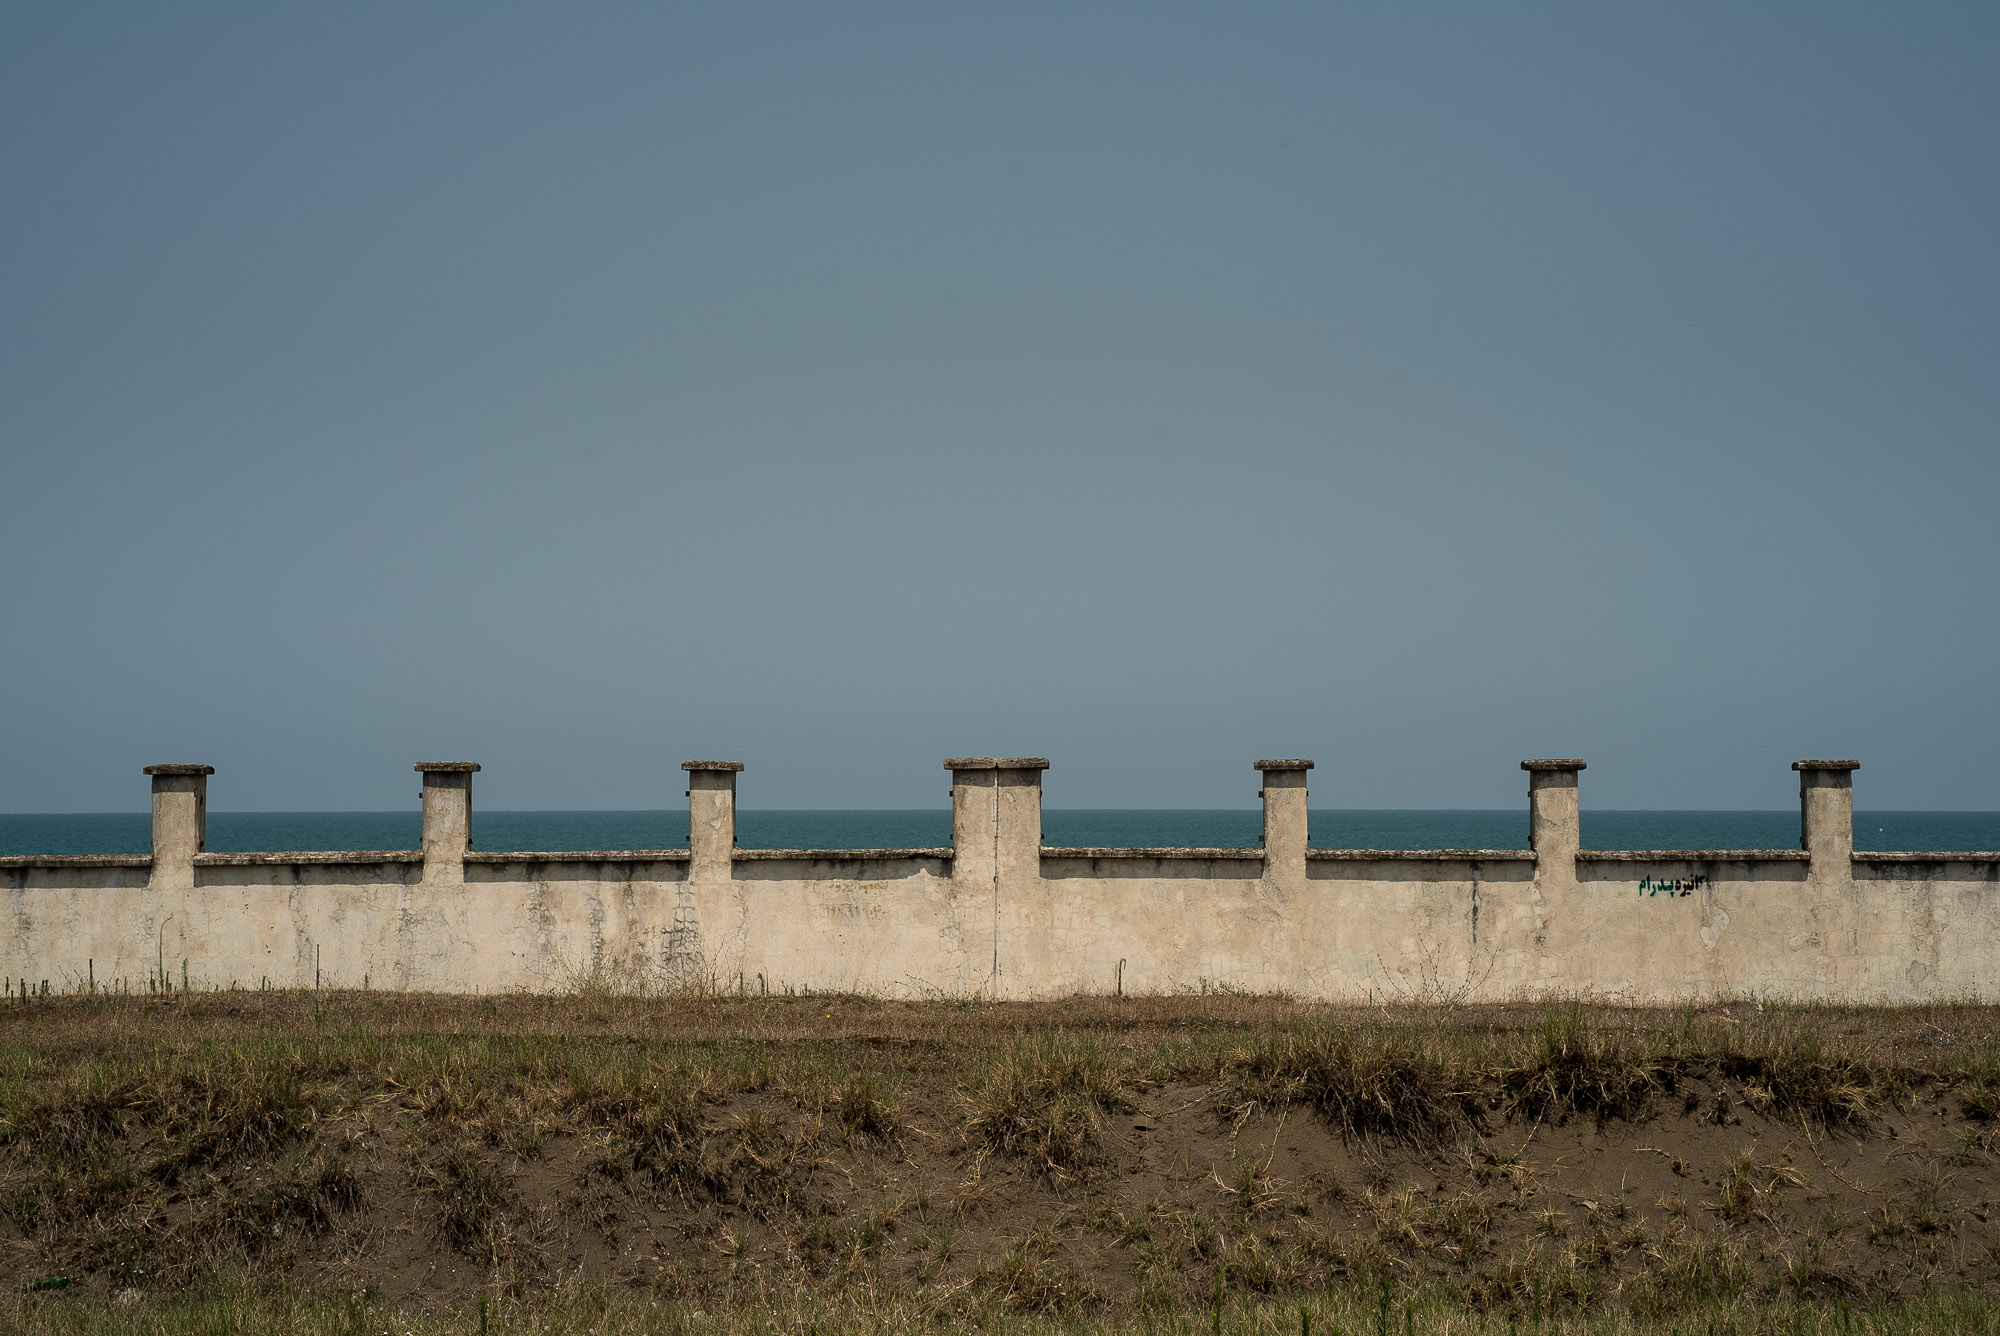 Caspian Sea behind wall